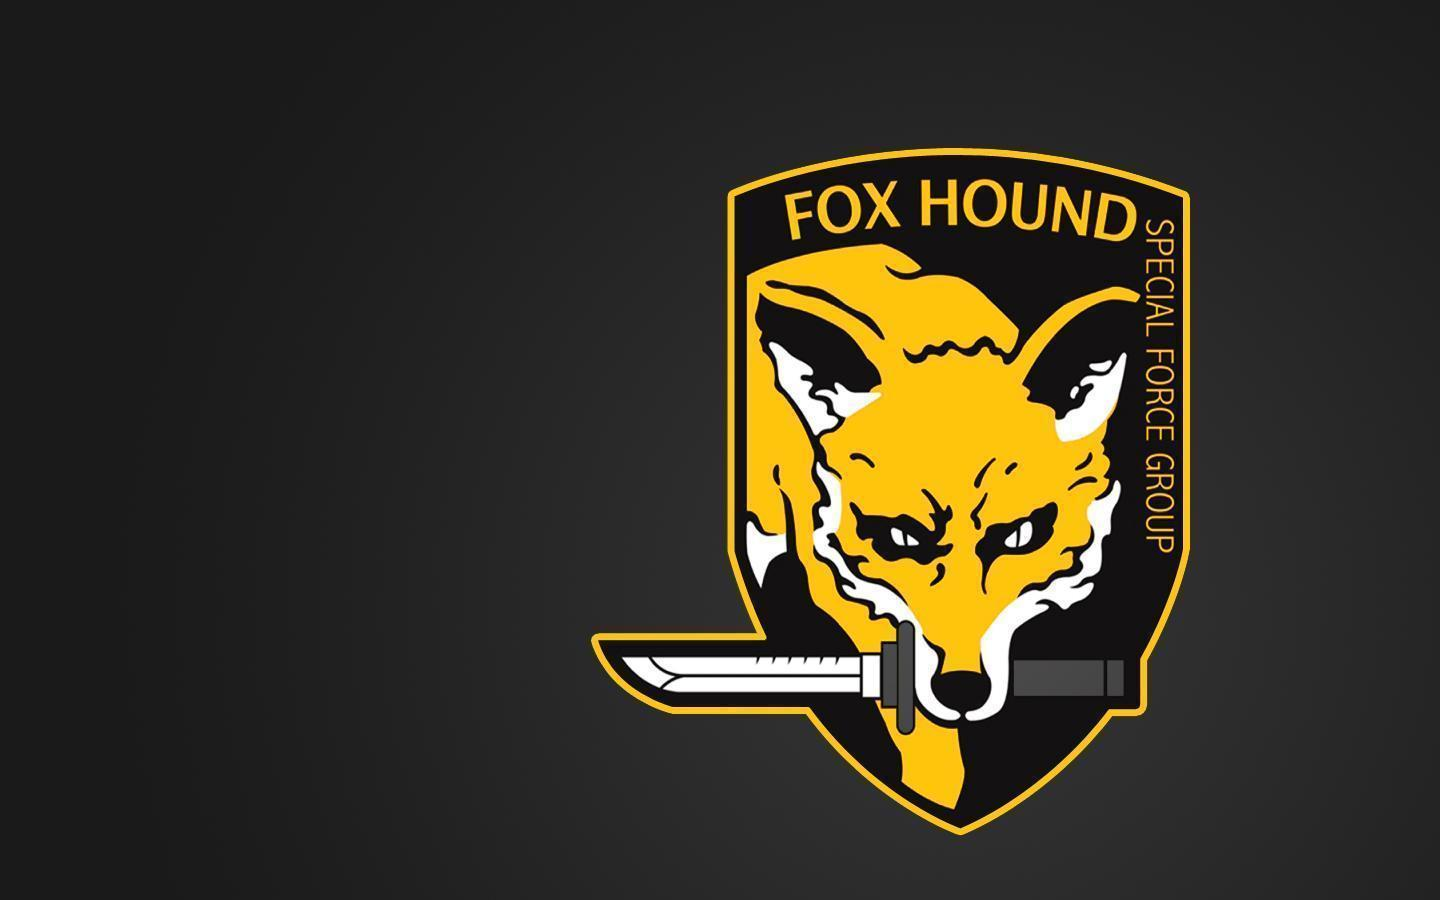 foxhound wallpaper